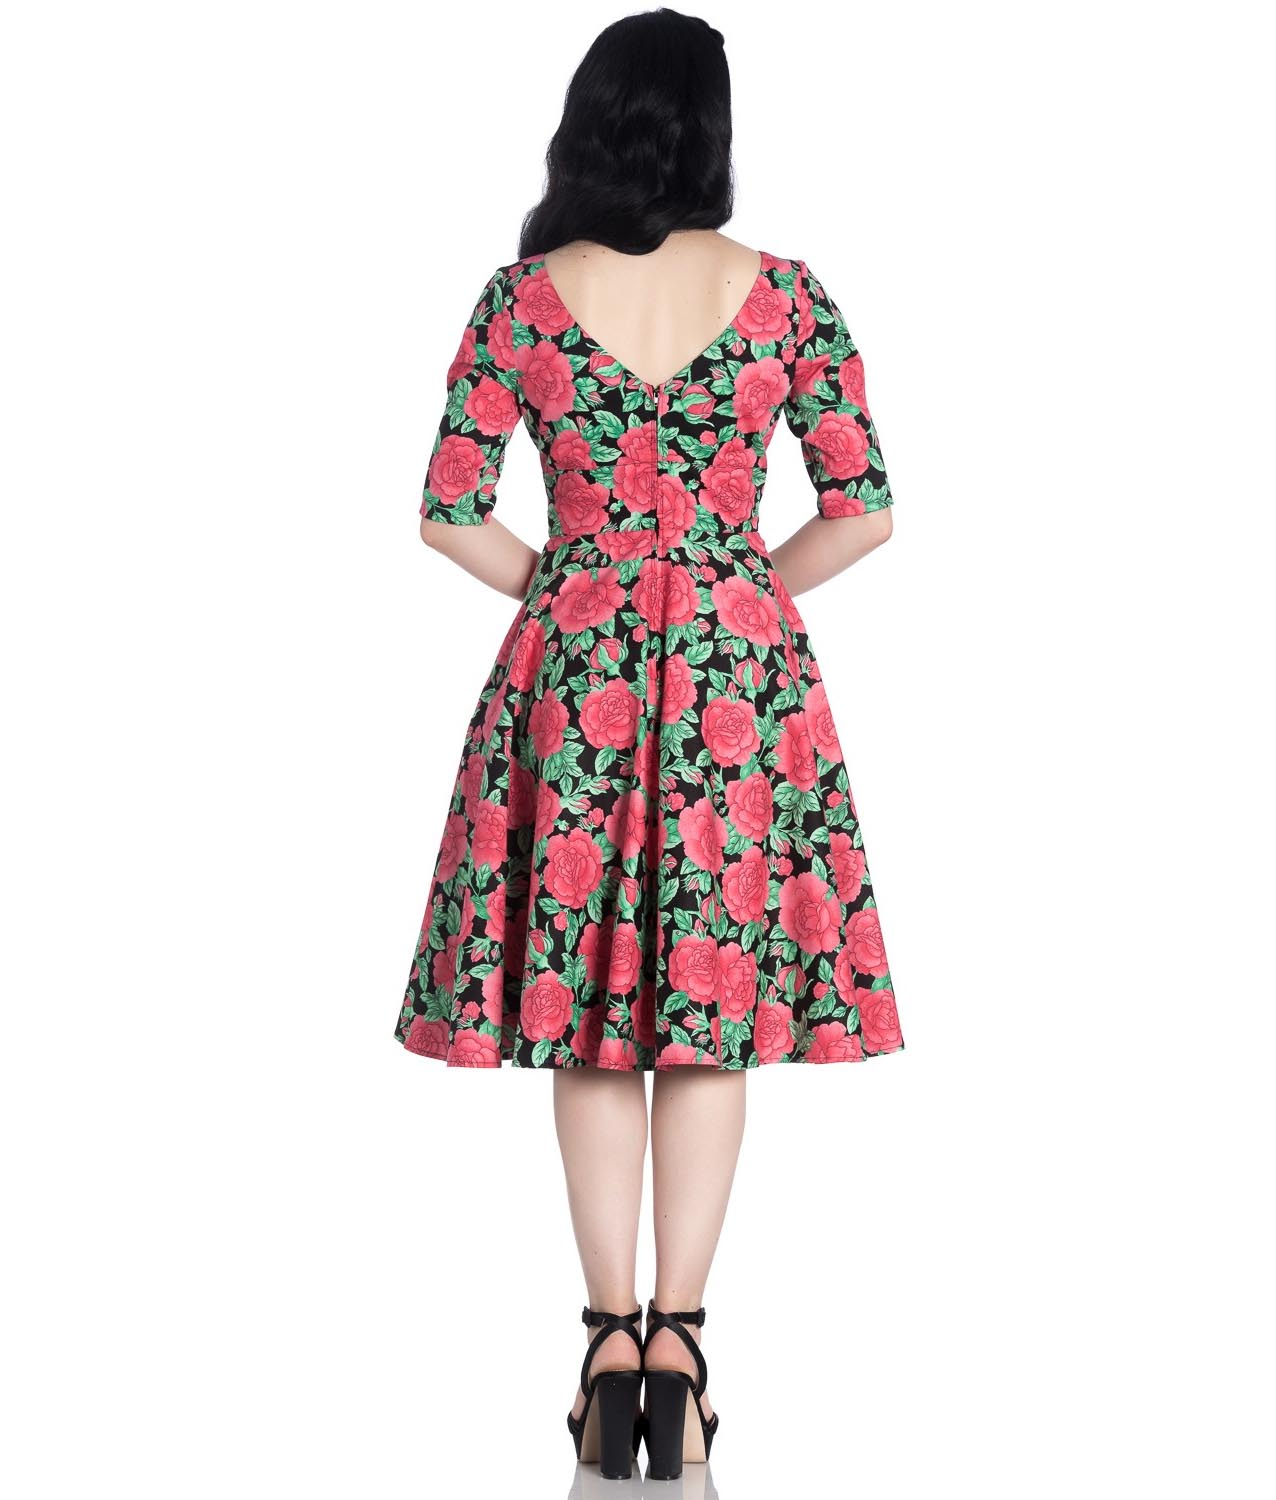 Hell-Bunny-40s-50s-Black-Pin-Up-Vintage-Dress-DARCY-Pink-Roses-All-Sizes thumbnail 25